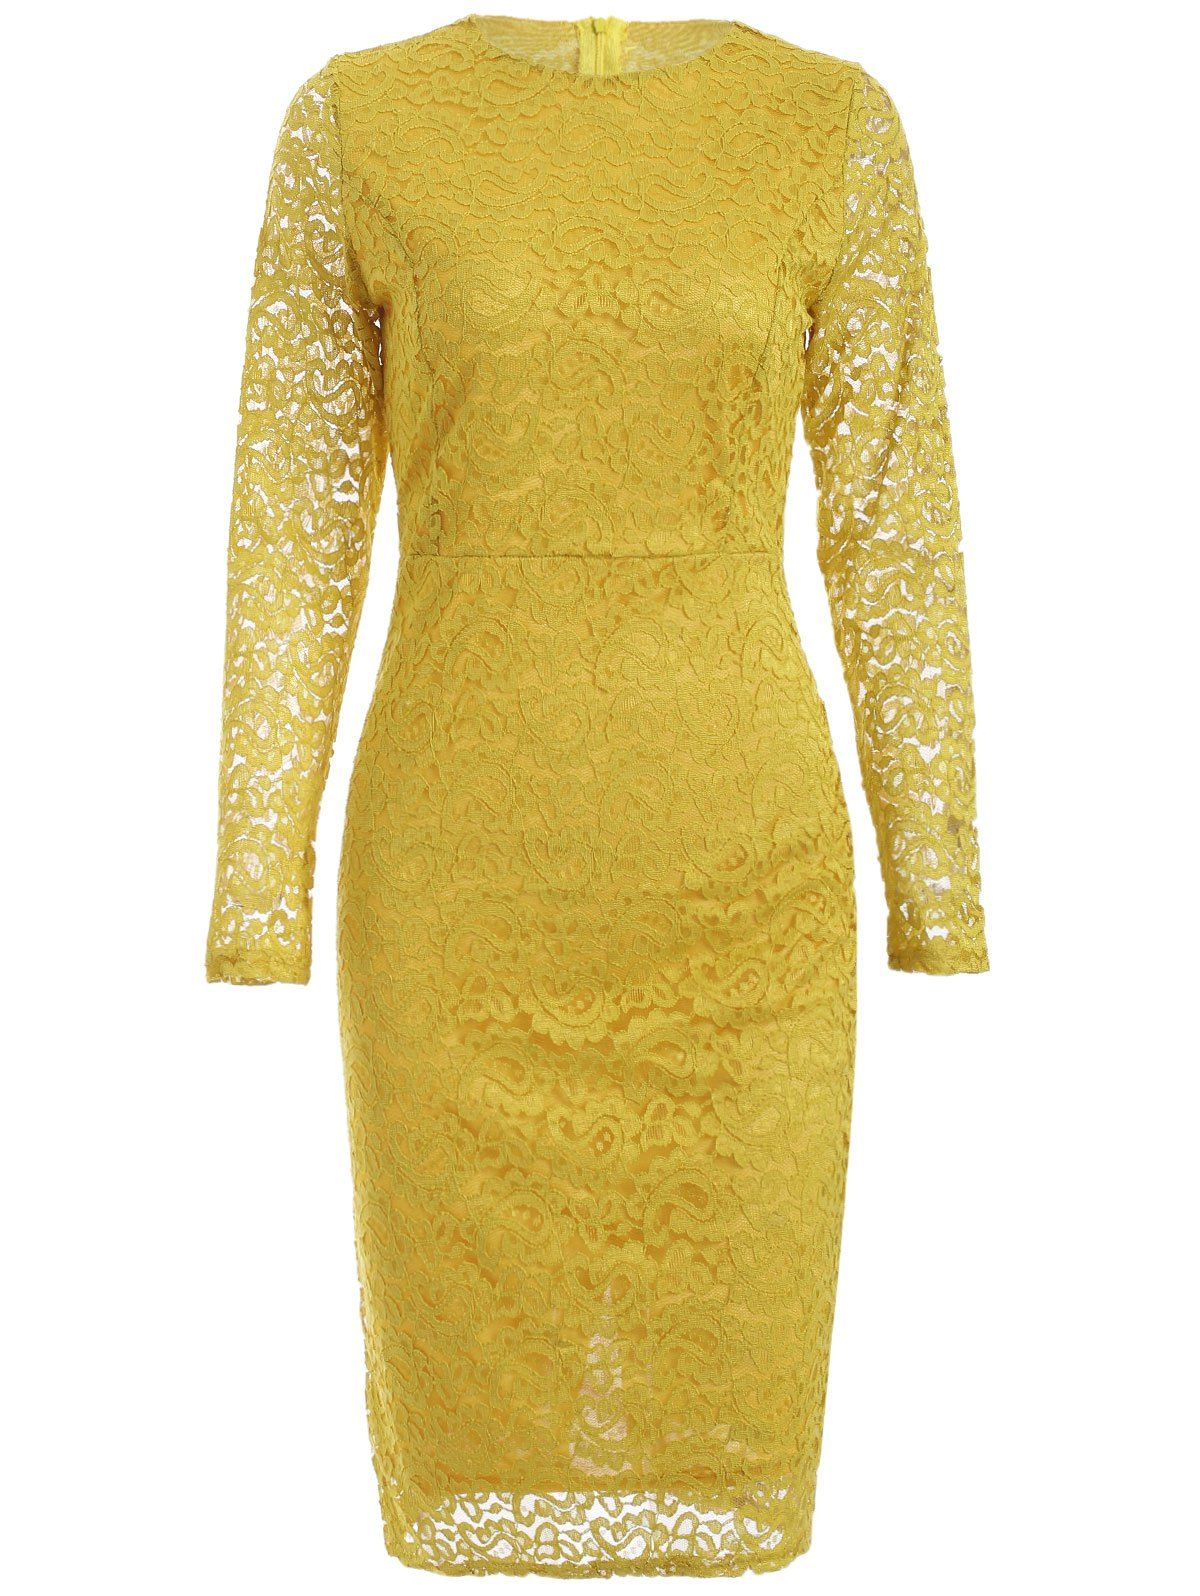 Long sleeve lace cutwork dress in yellow sammydress cute